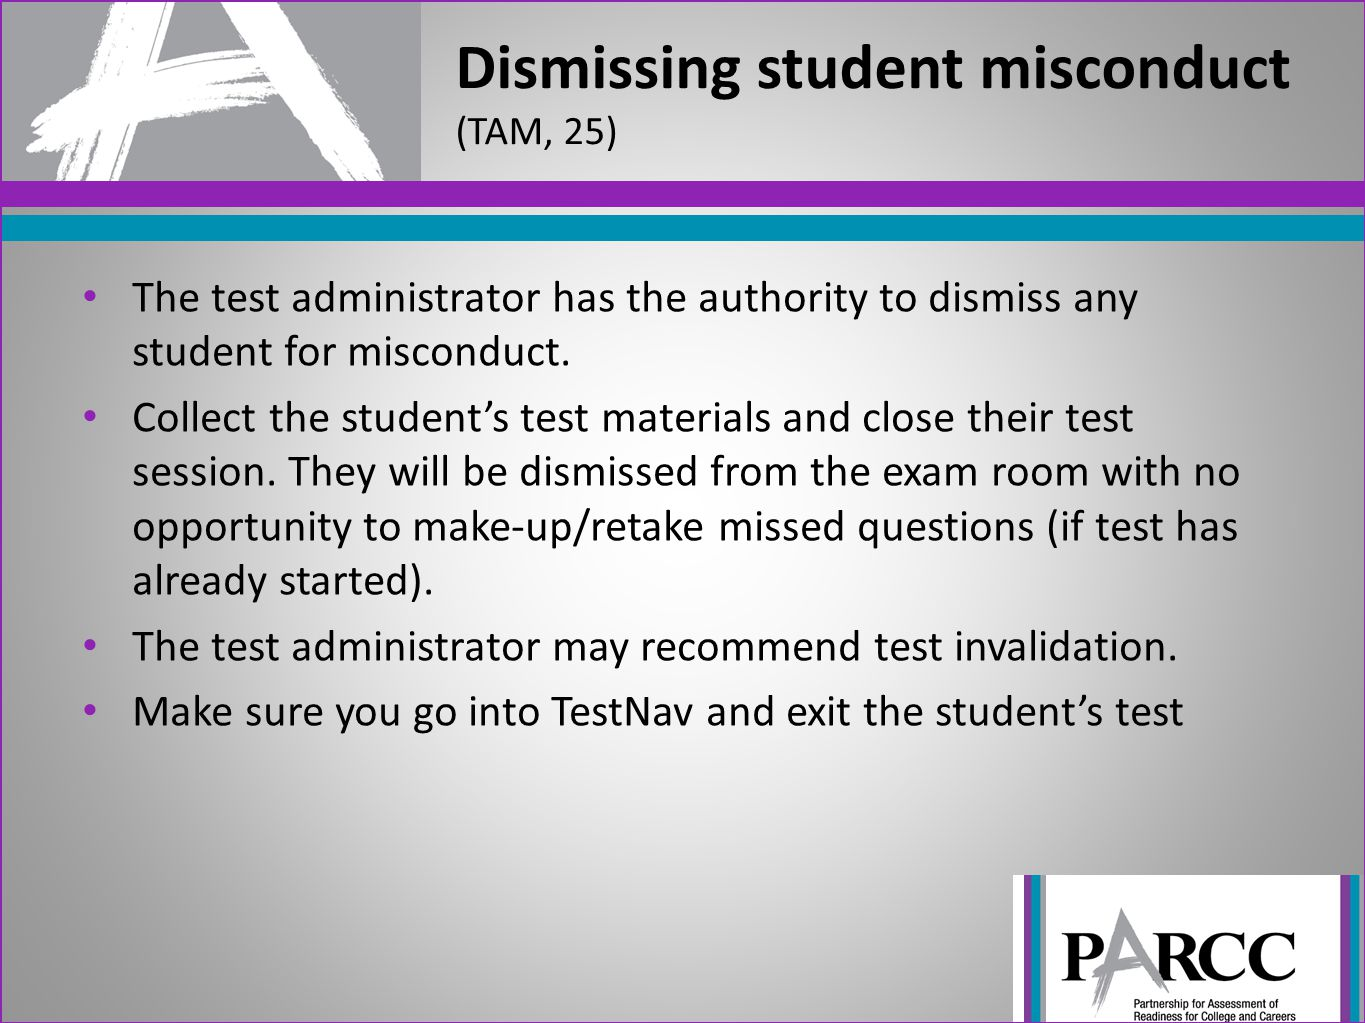 The test administrator has the authority to dismiss any student for misconduct. Collect the student's test materials and close their test session. The